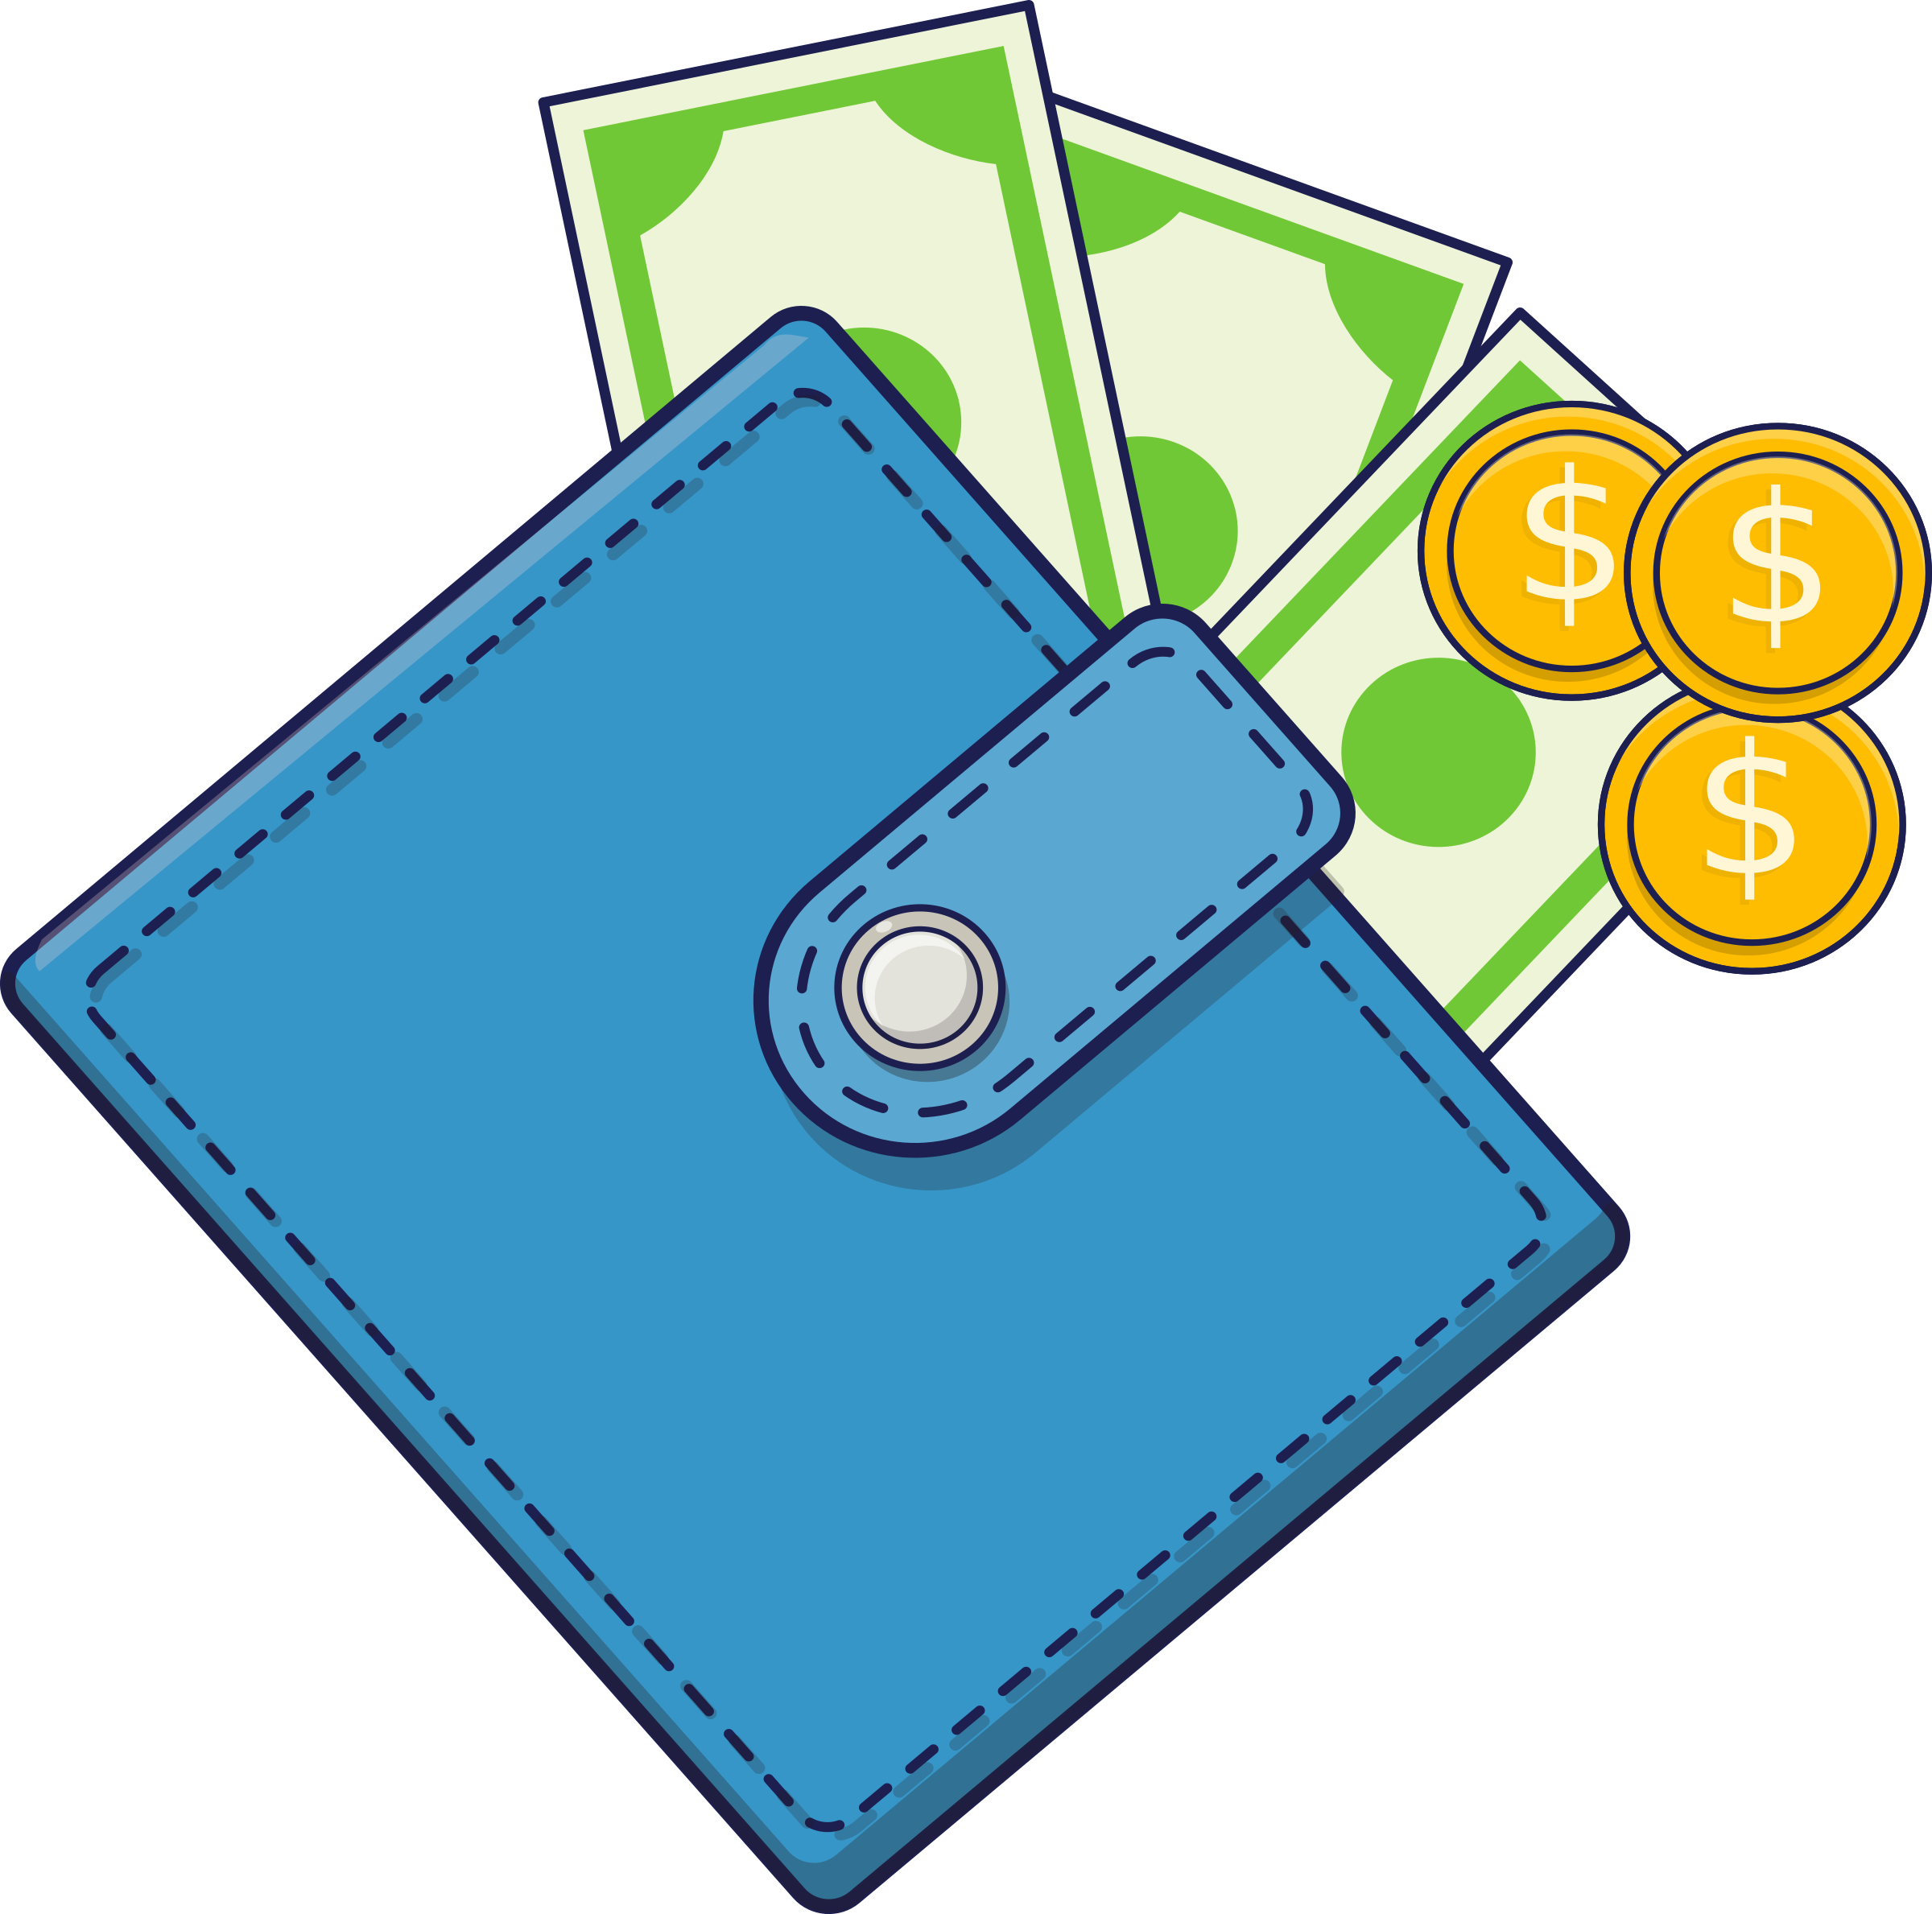 Wallet clipart. With cash big image